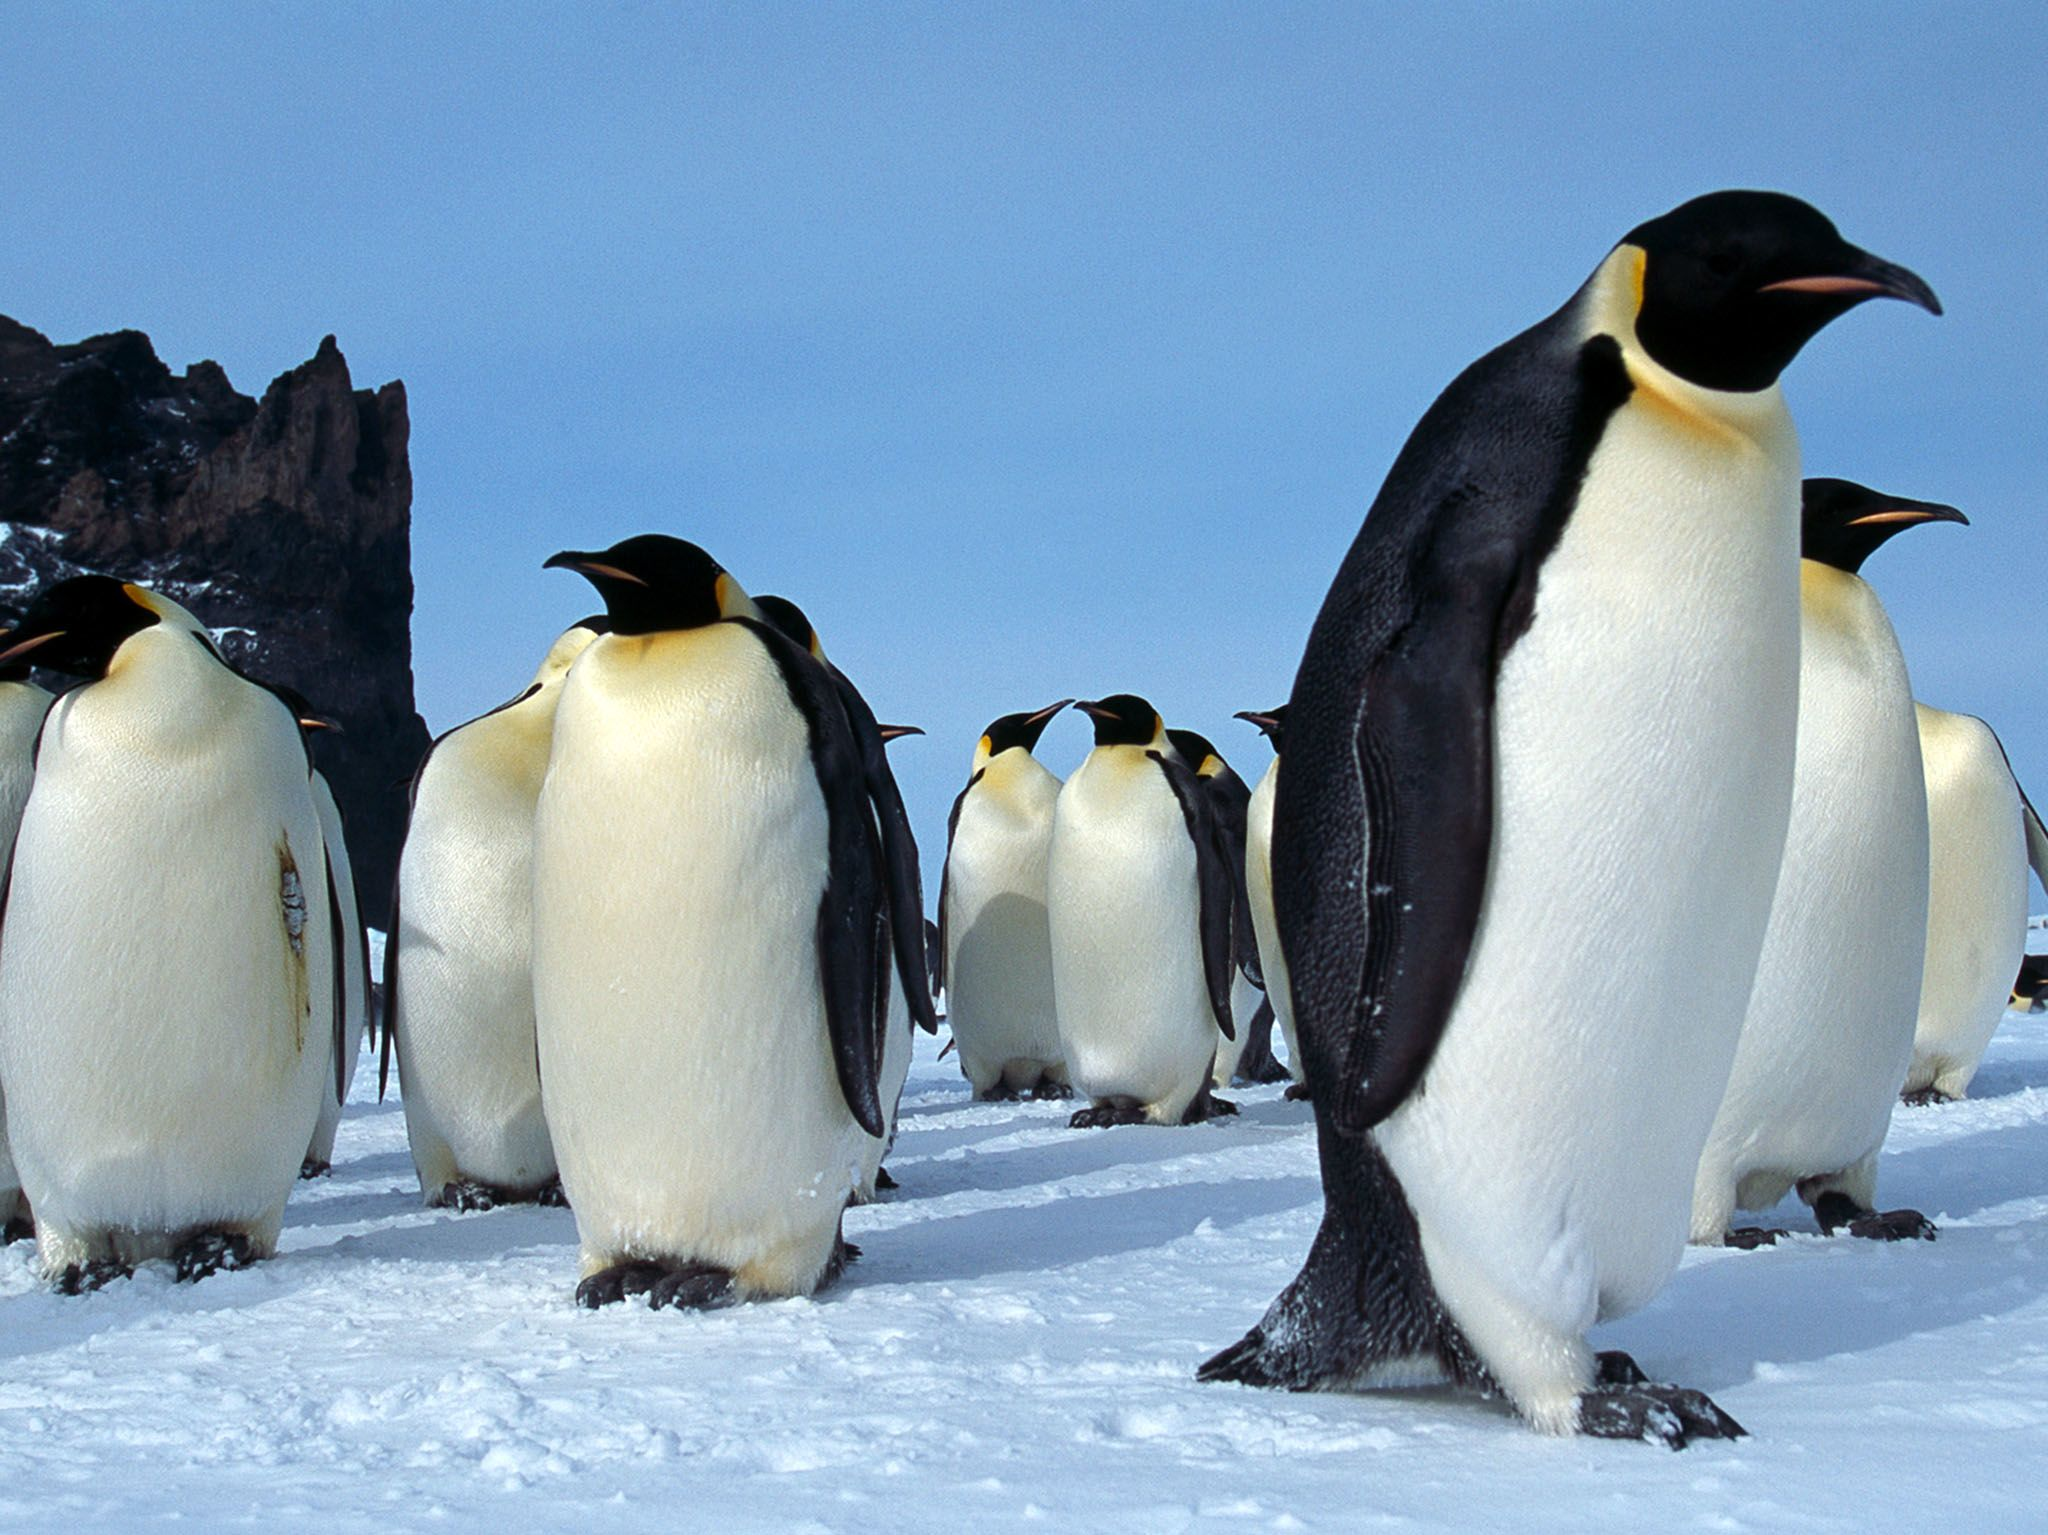 Cape Washington, Antarctica: A group of adult emperor penguins stand together on the ice in Cape... [Photo of the day - April 2017]